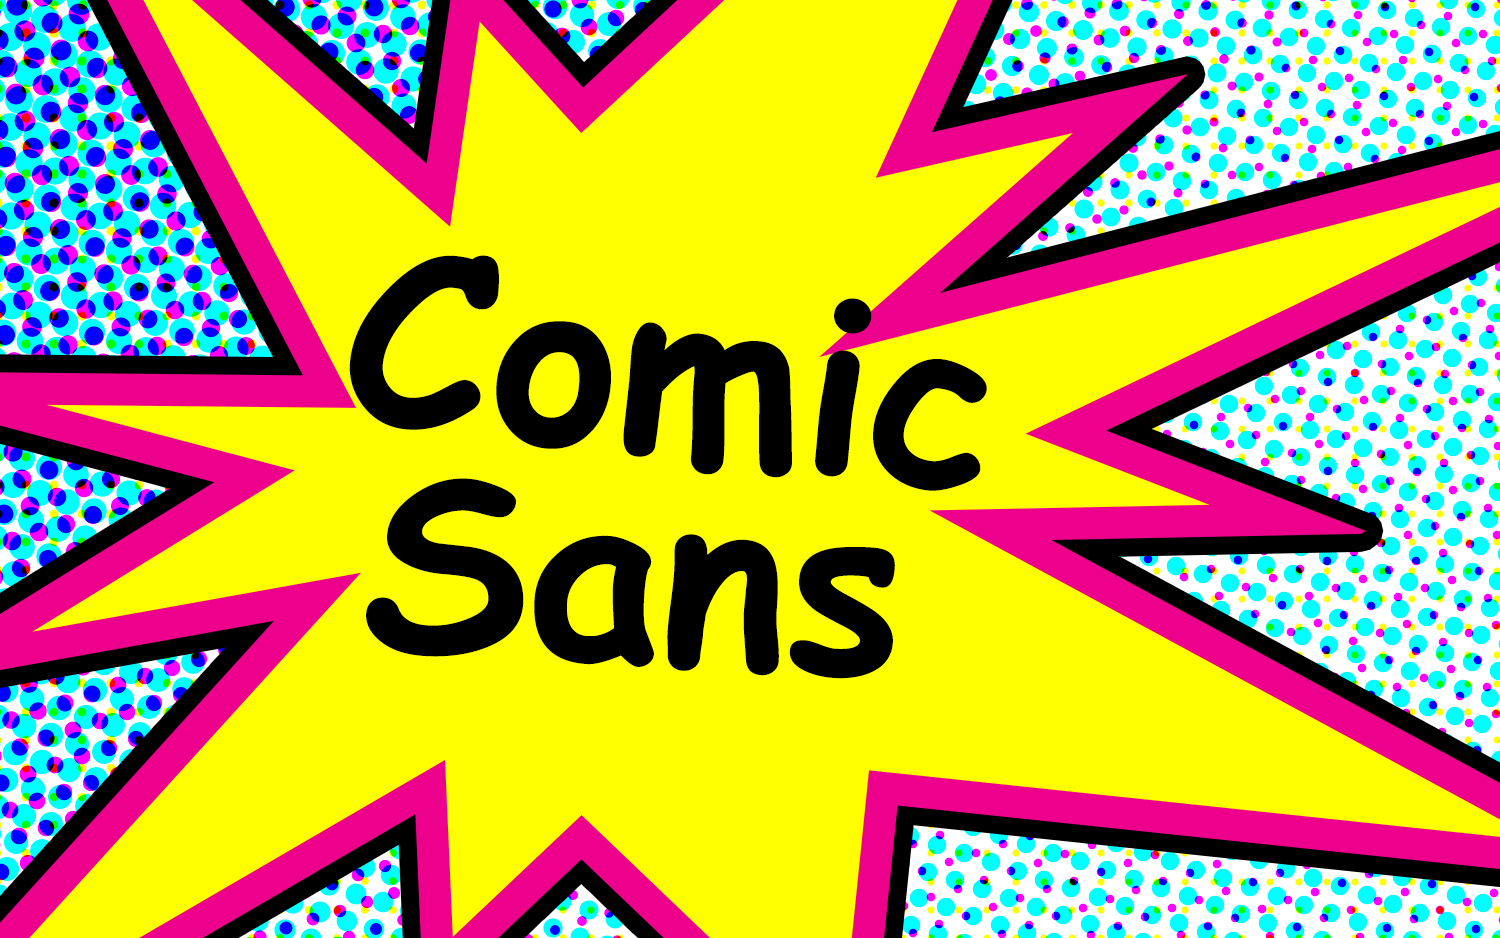 Why Do People Hate Comic Sans So Much? | Live Science